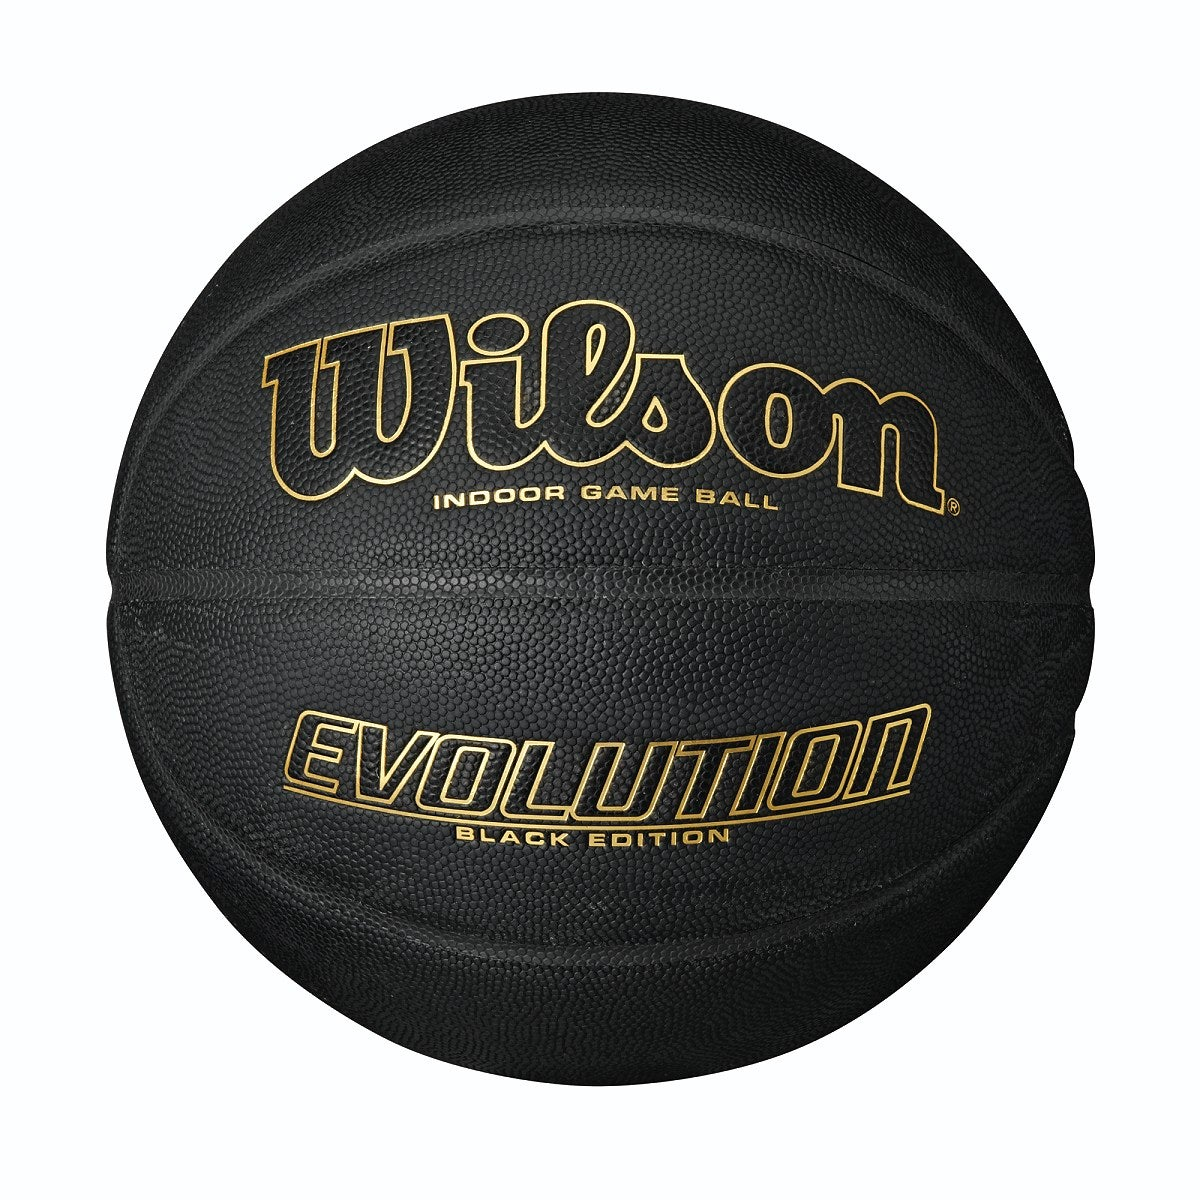 EVOLUTION BLACK EDITION GAME BASKETBALL - GOLD, OFFICIAL SIZE (29.5 IN)